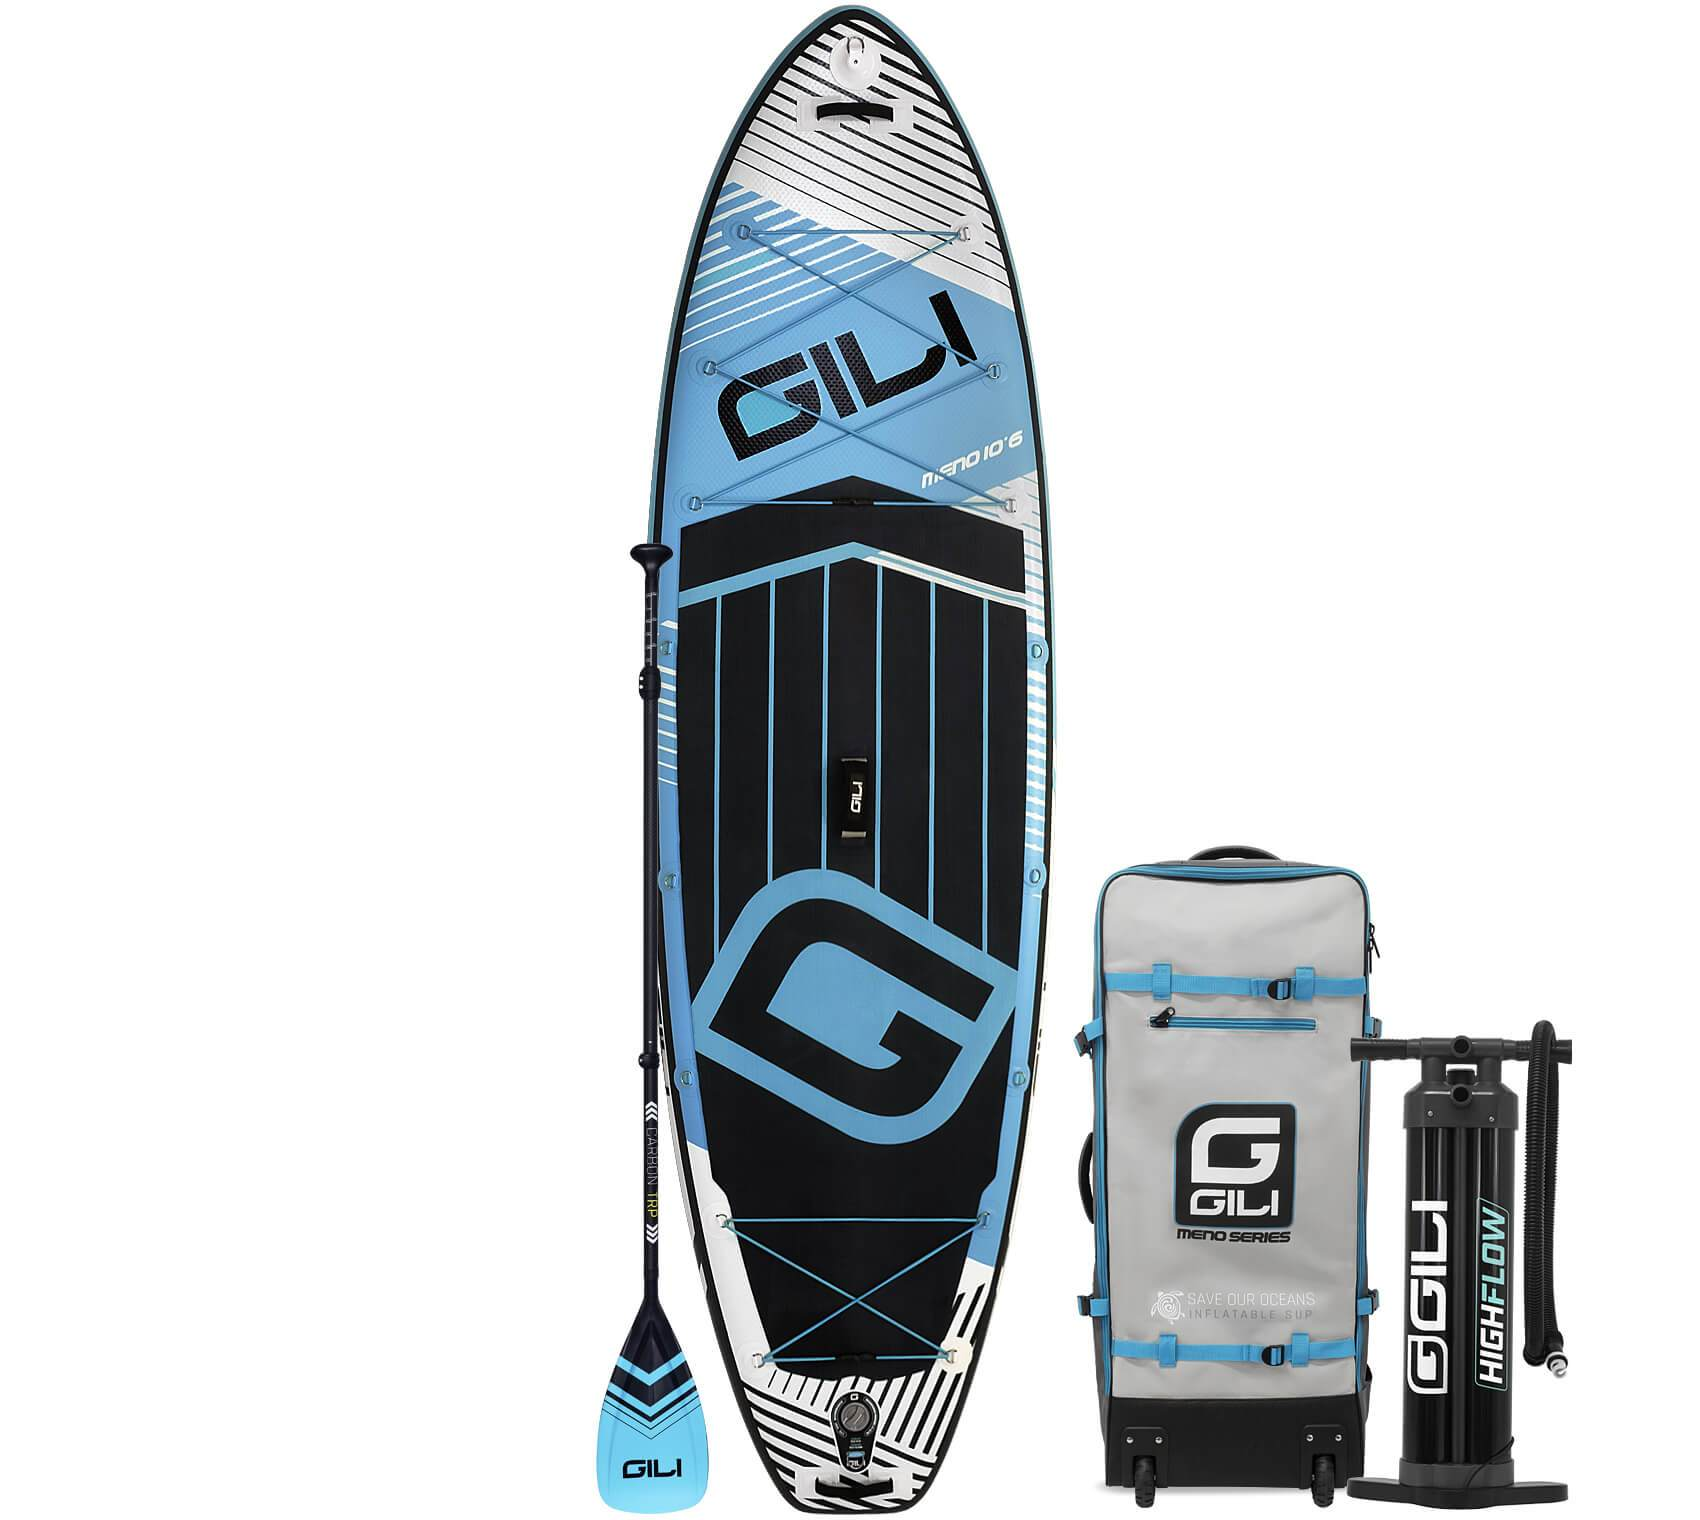 Preowned GILI 10'6 / 11'6 MENO Inflatable Stand Up Paddle Board Package